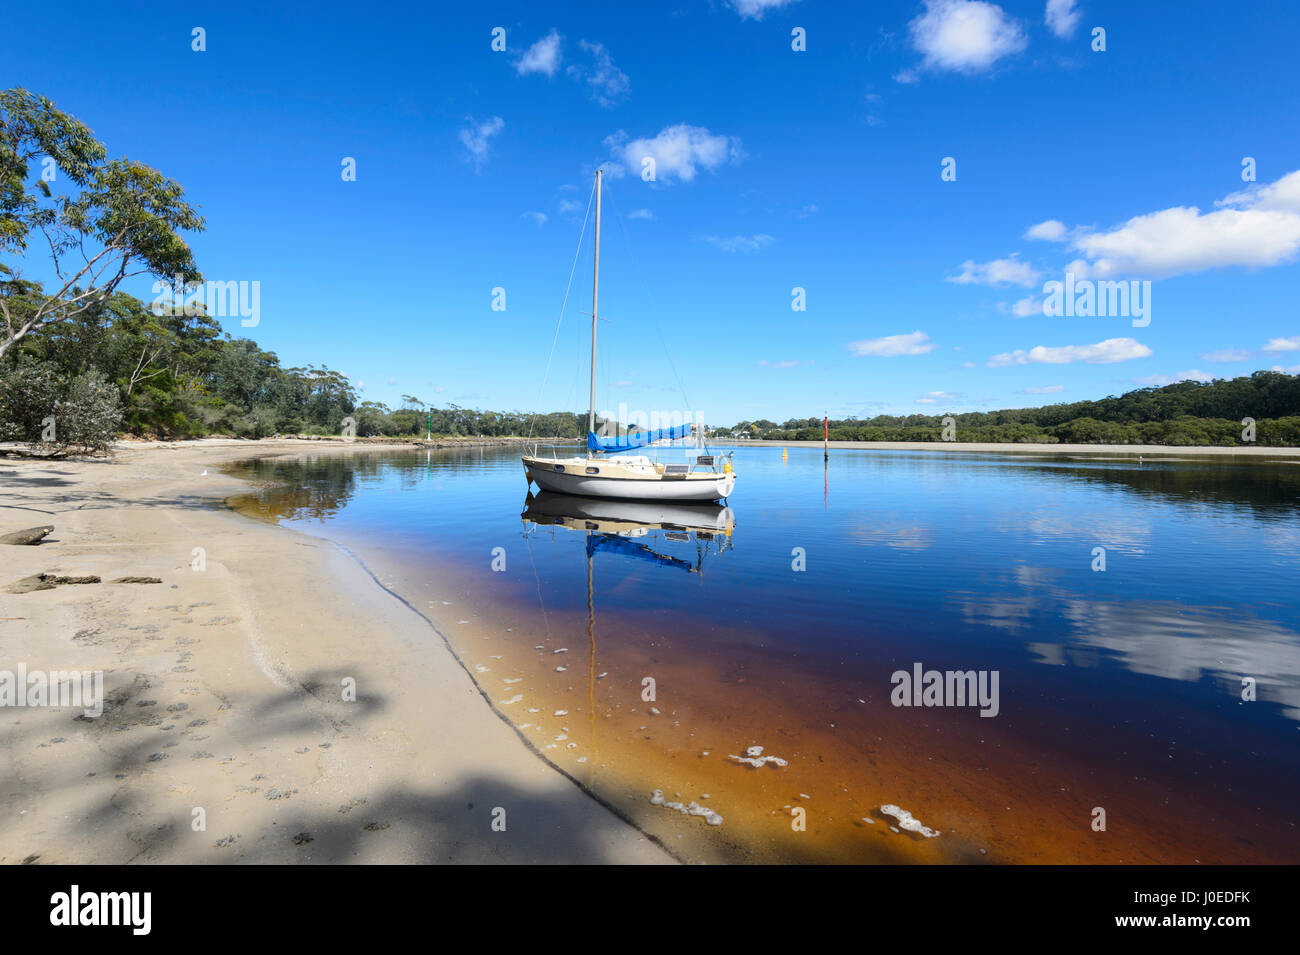 Sailing Boat moored in tannin-stained Currambene Creek, Huskisson, South Coast, New South Wales, NSW, Australia - Stock Image